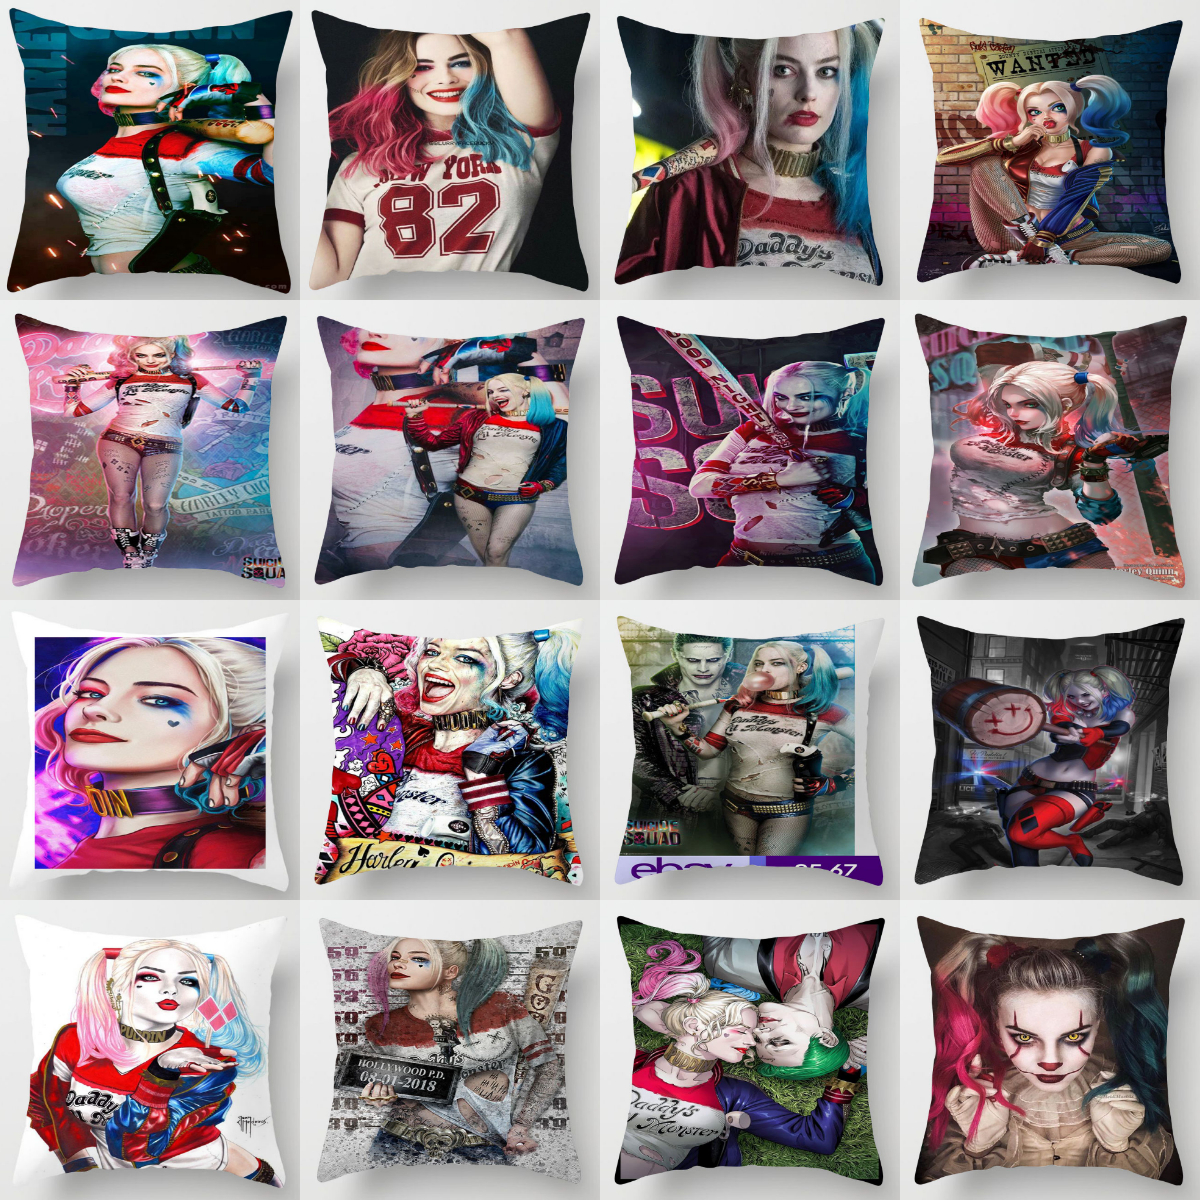 ZENGA Harley Quinn Joker Pillow Cover 45x45cm Cushion Cover Decorative Pillows For Sofa Throw Pillows Home Decoration Pillowcase